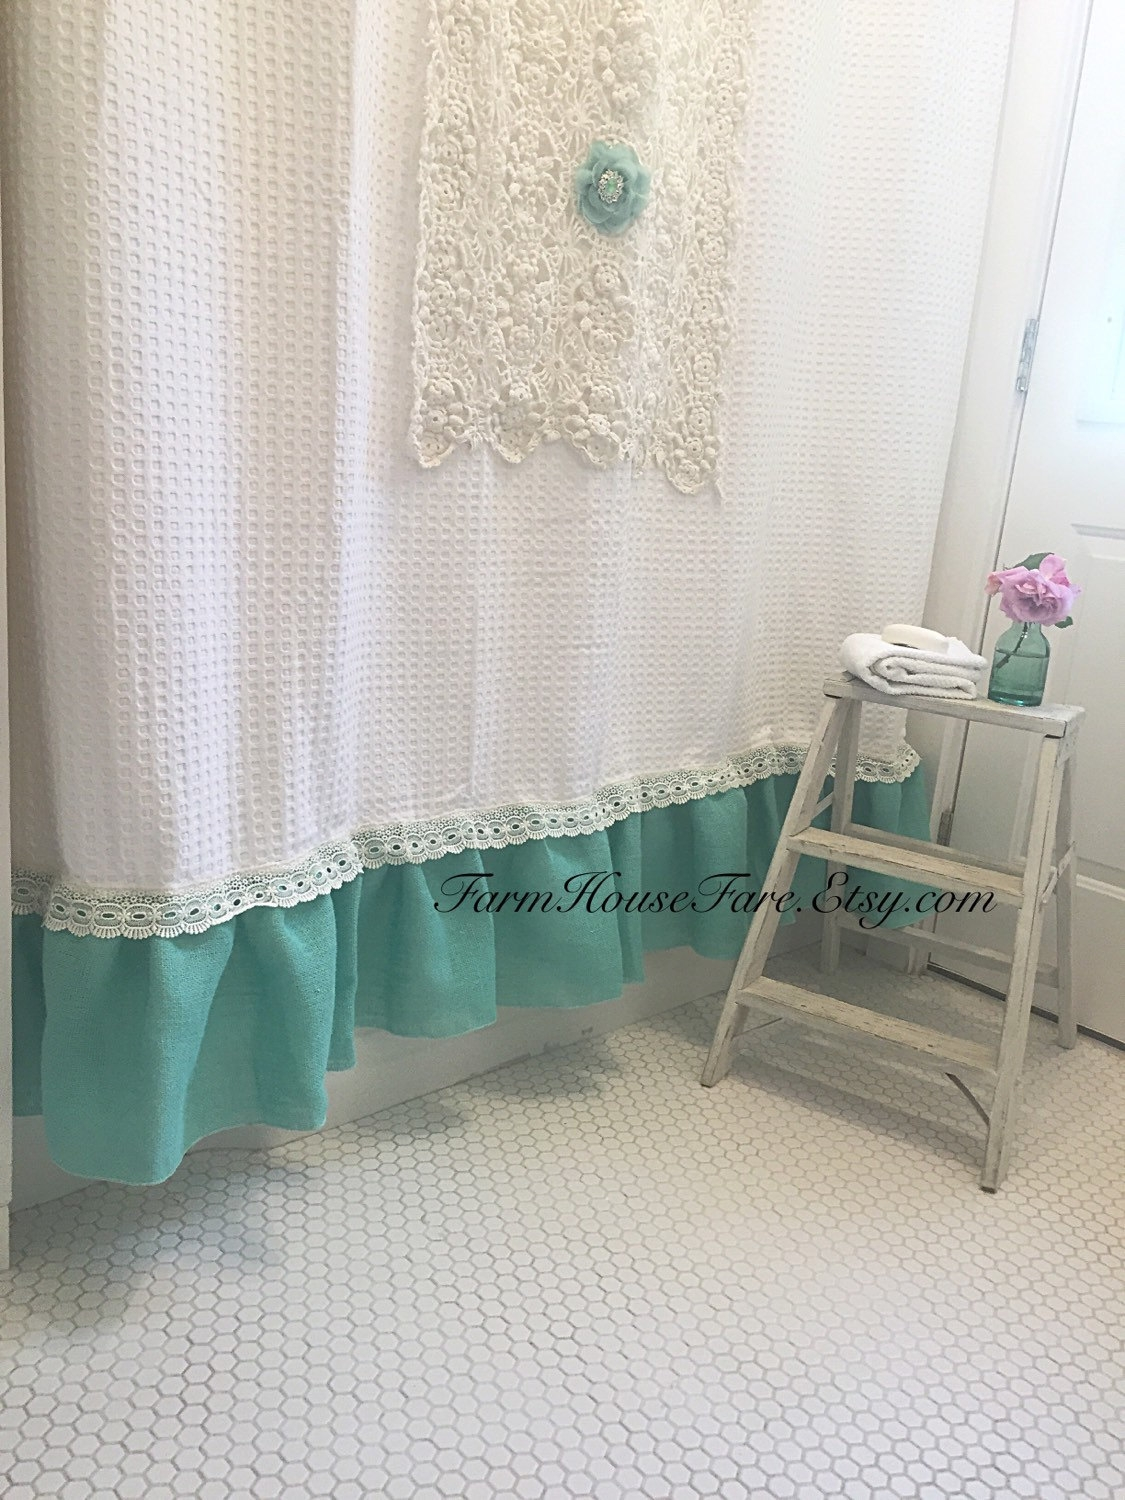 Burlap Curtain Etsy Within Turquoise Burlap Curtains (Image 8 of 15)